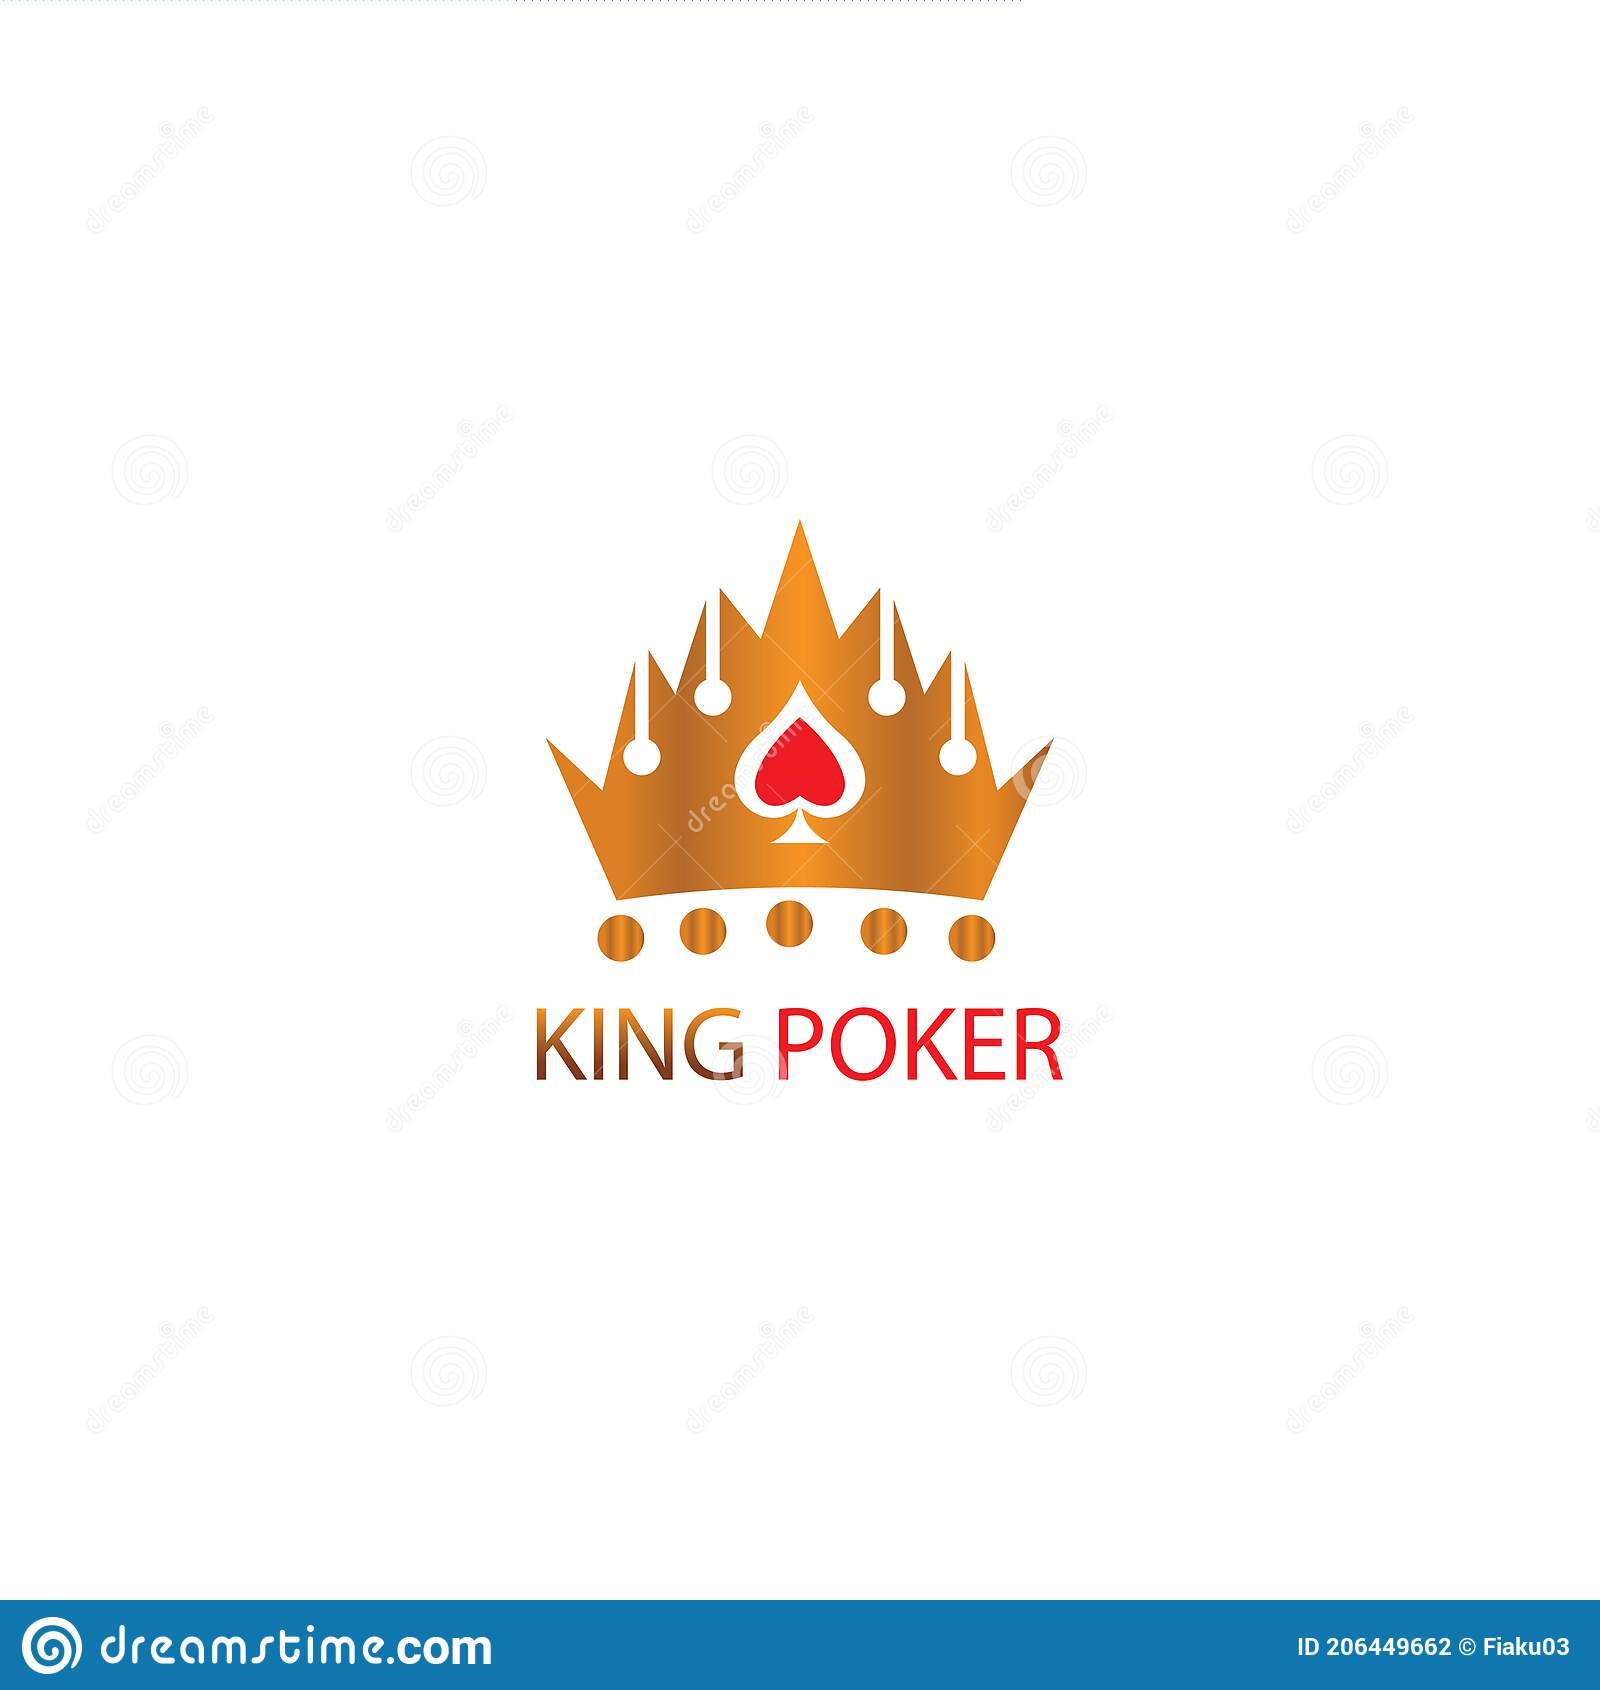 Poker King Stock Illustrations 4 505 Poker King Stock Illustrations Vectors Clipart Dreamstime